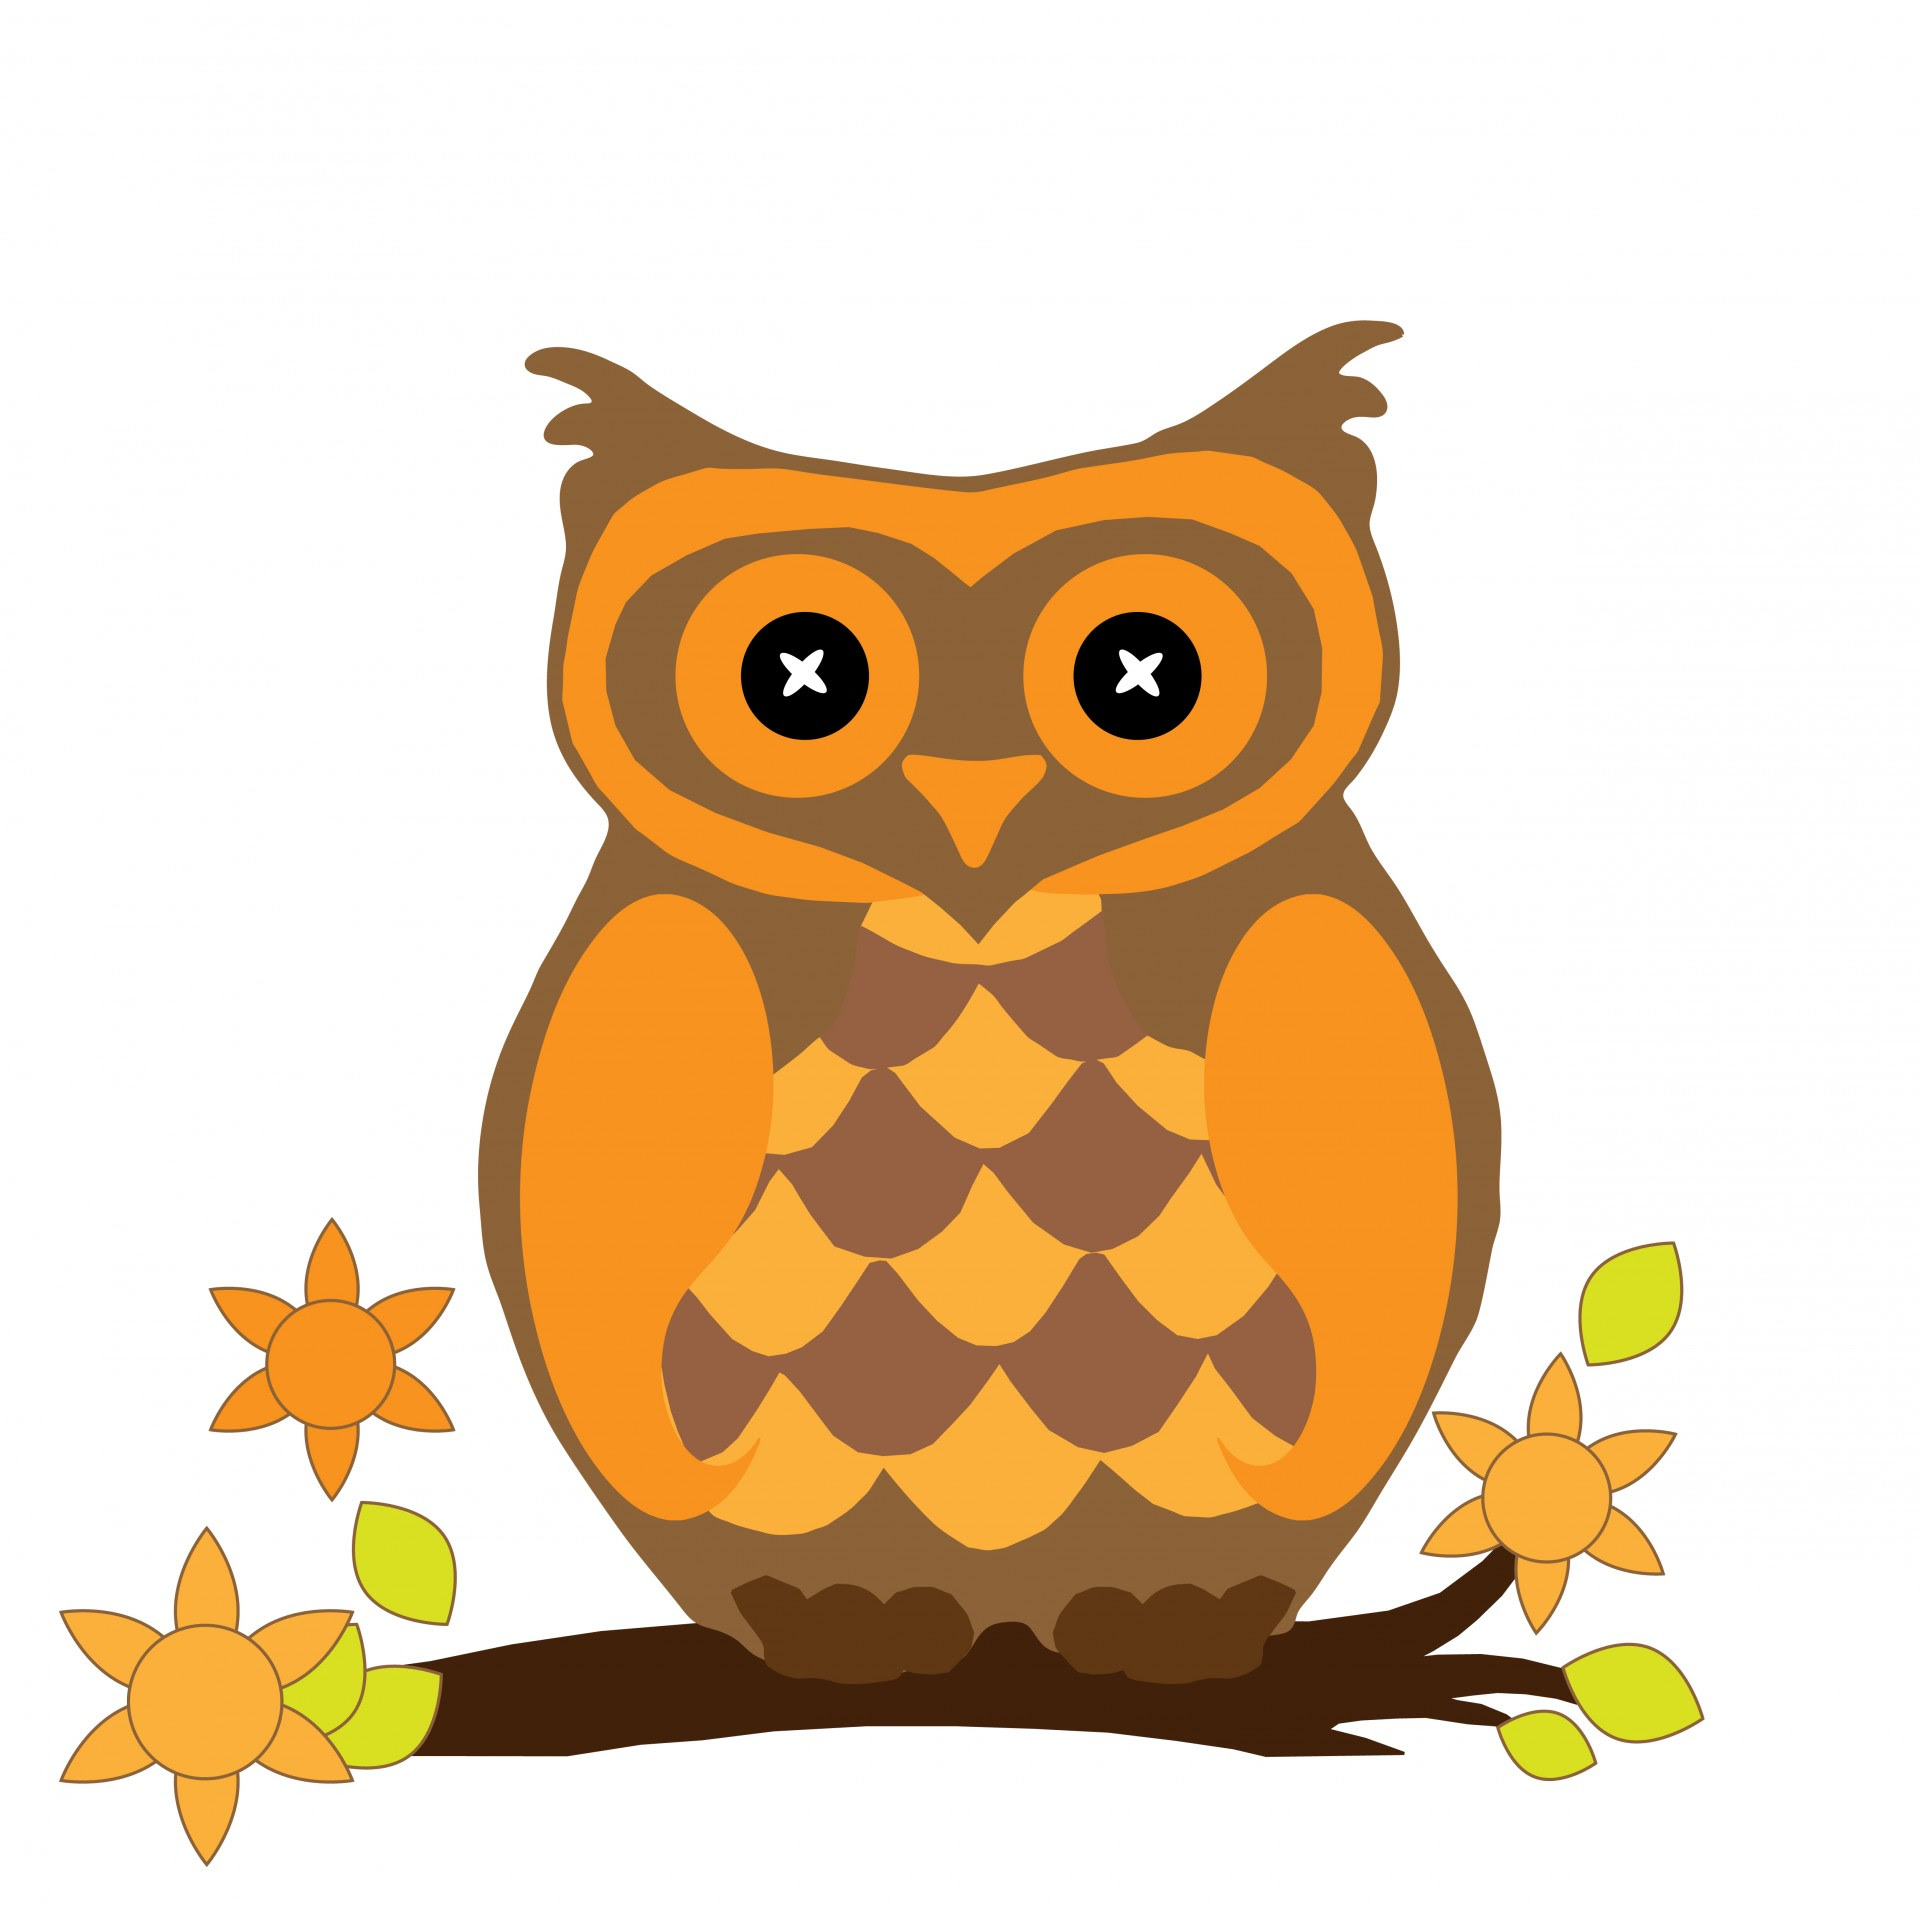 Owl Clipart Free Stock Photo - Public Domain Pictures